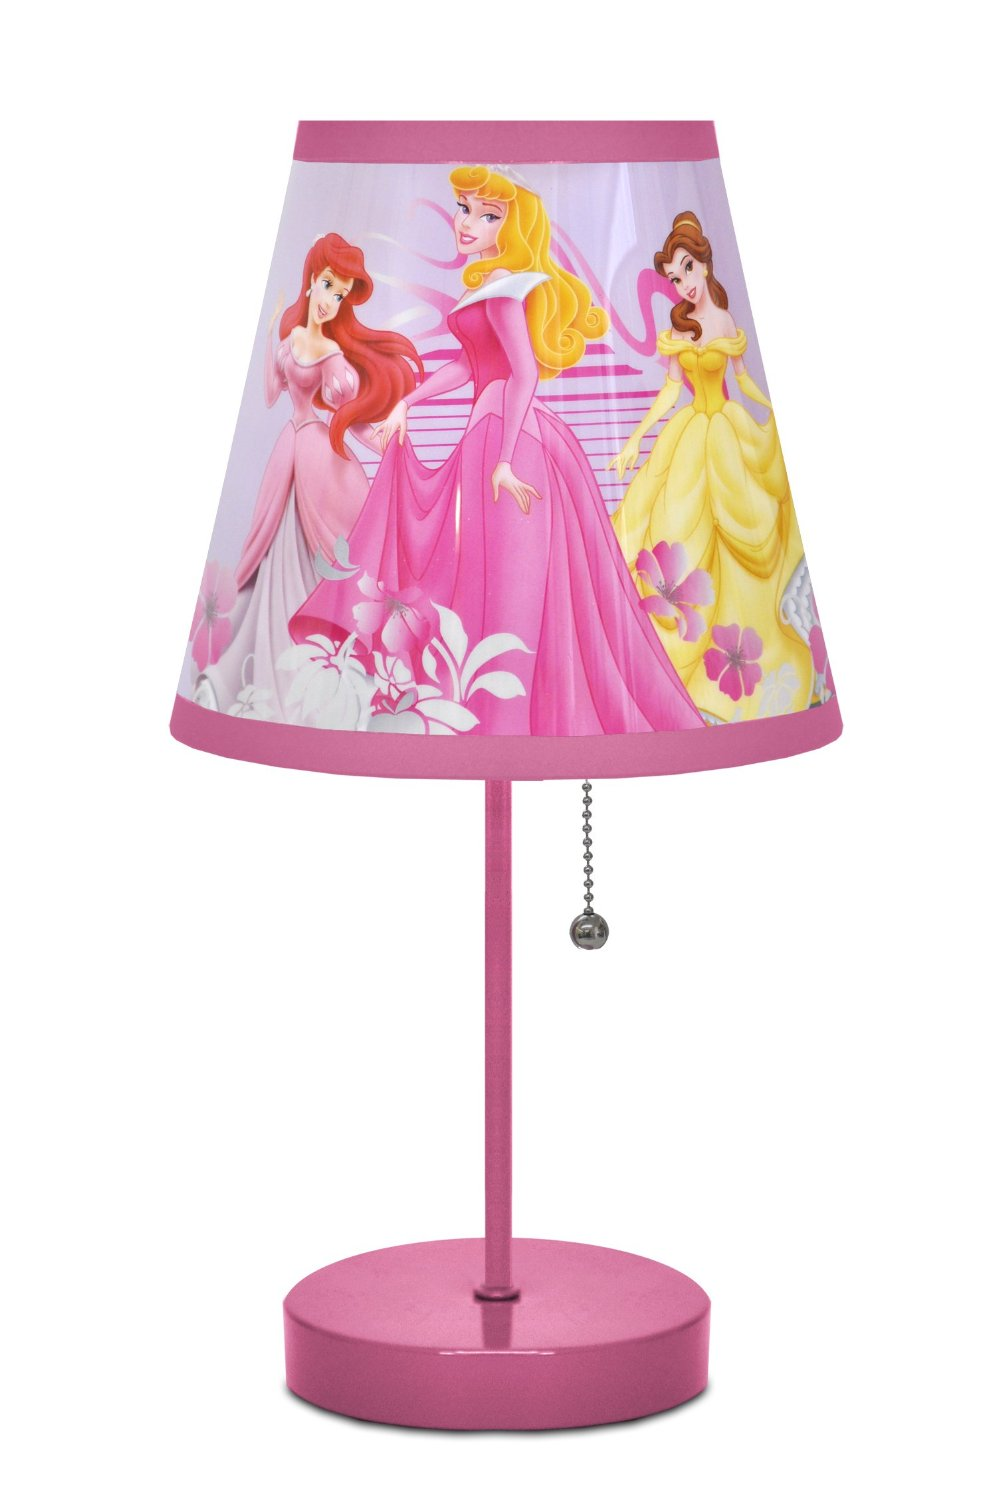 Amazon: Disney Princess Table Lamp Only $14.17 (Reg. $25.99)